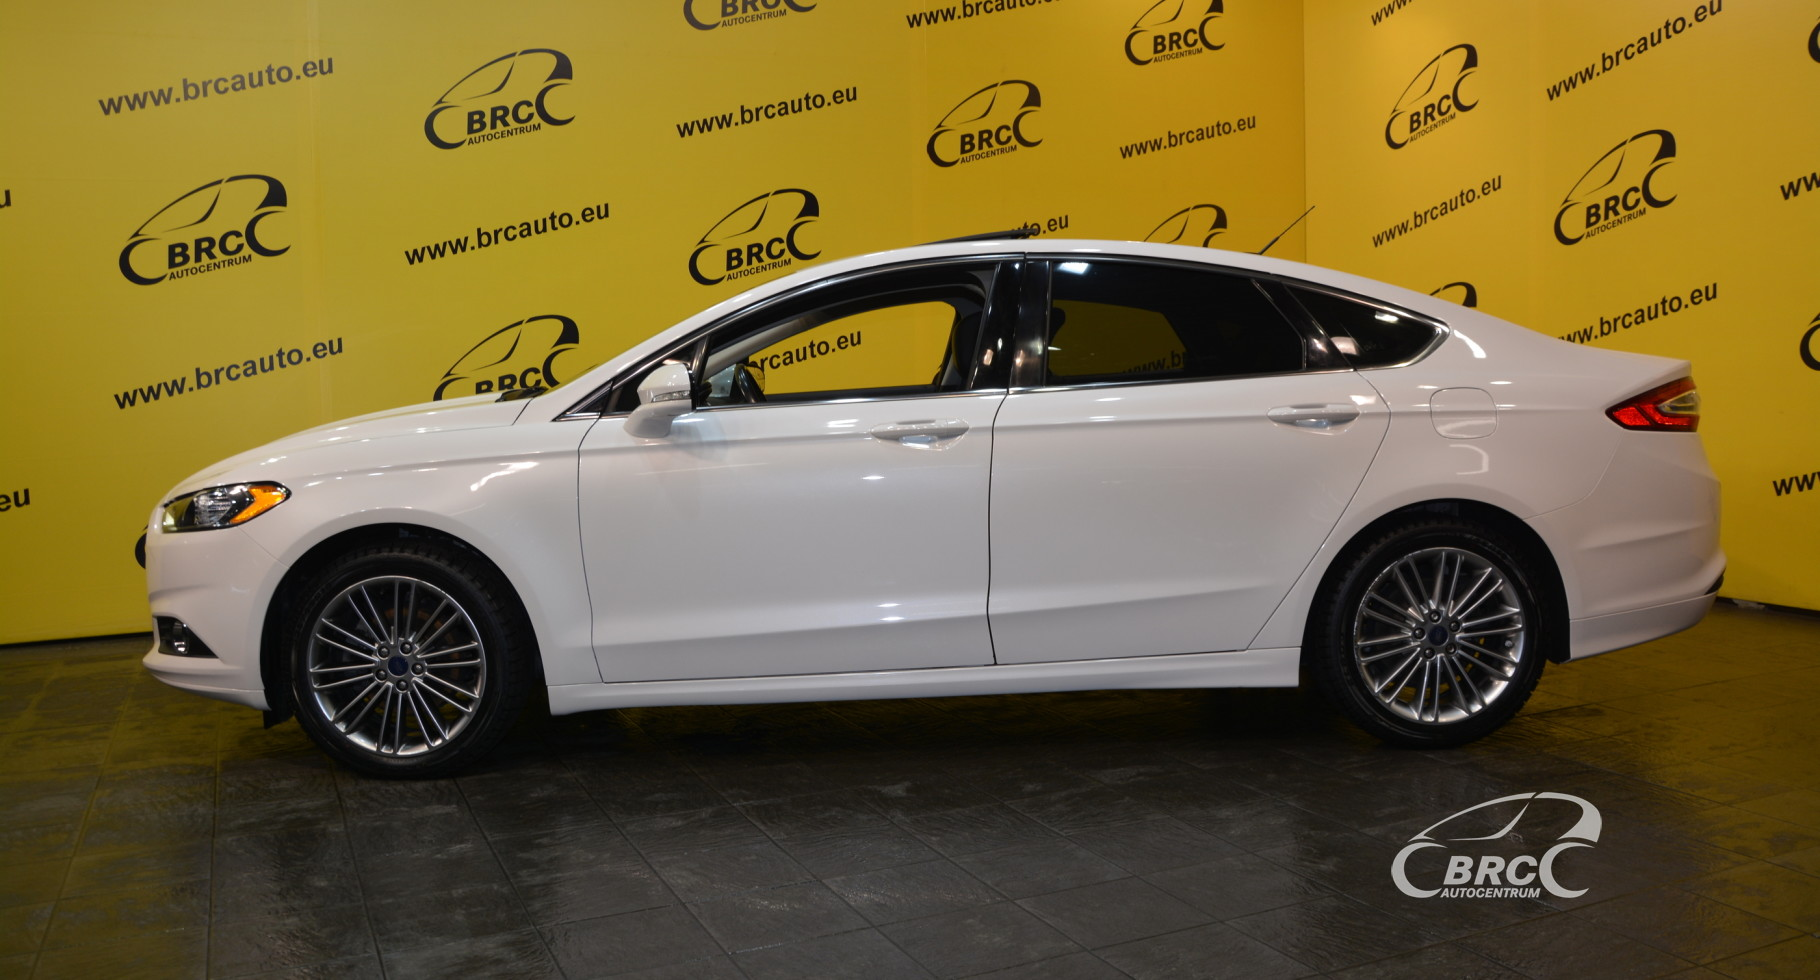 Ford Fusion 1.6 EcoBoost Automatas